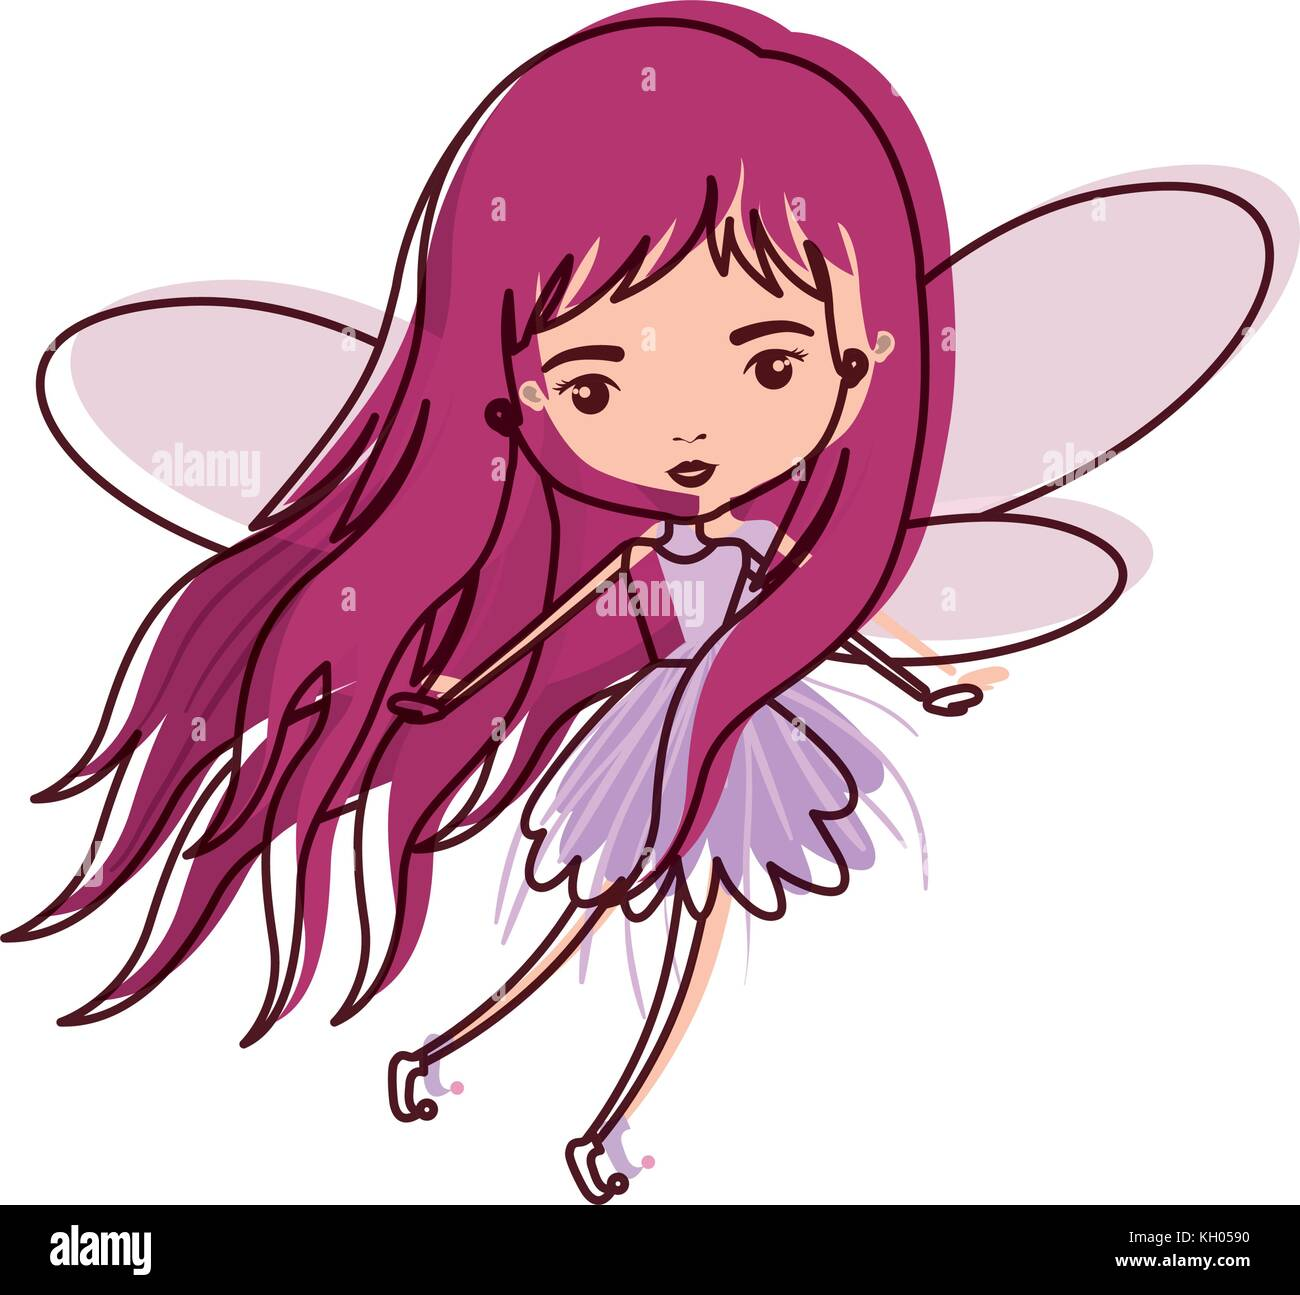 girly fairy flying with wings and long hair in watercolor silhouette - Stock Image